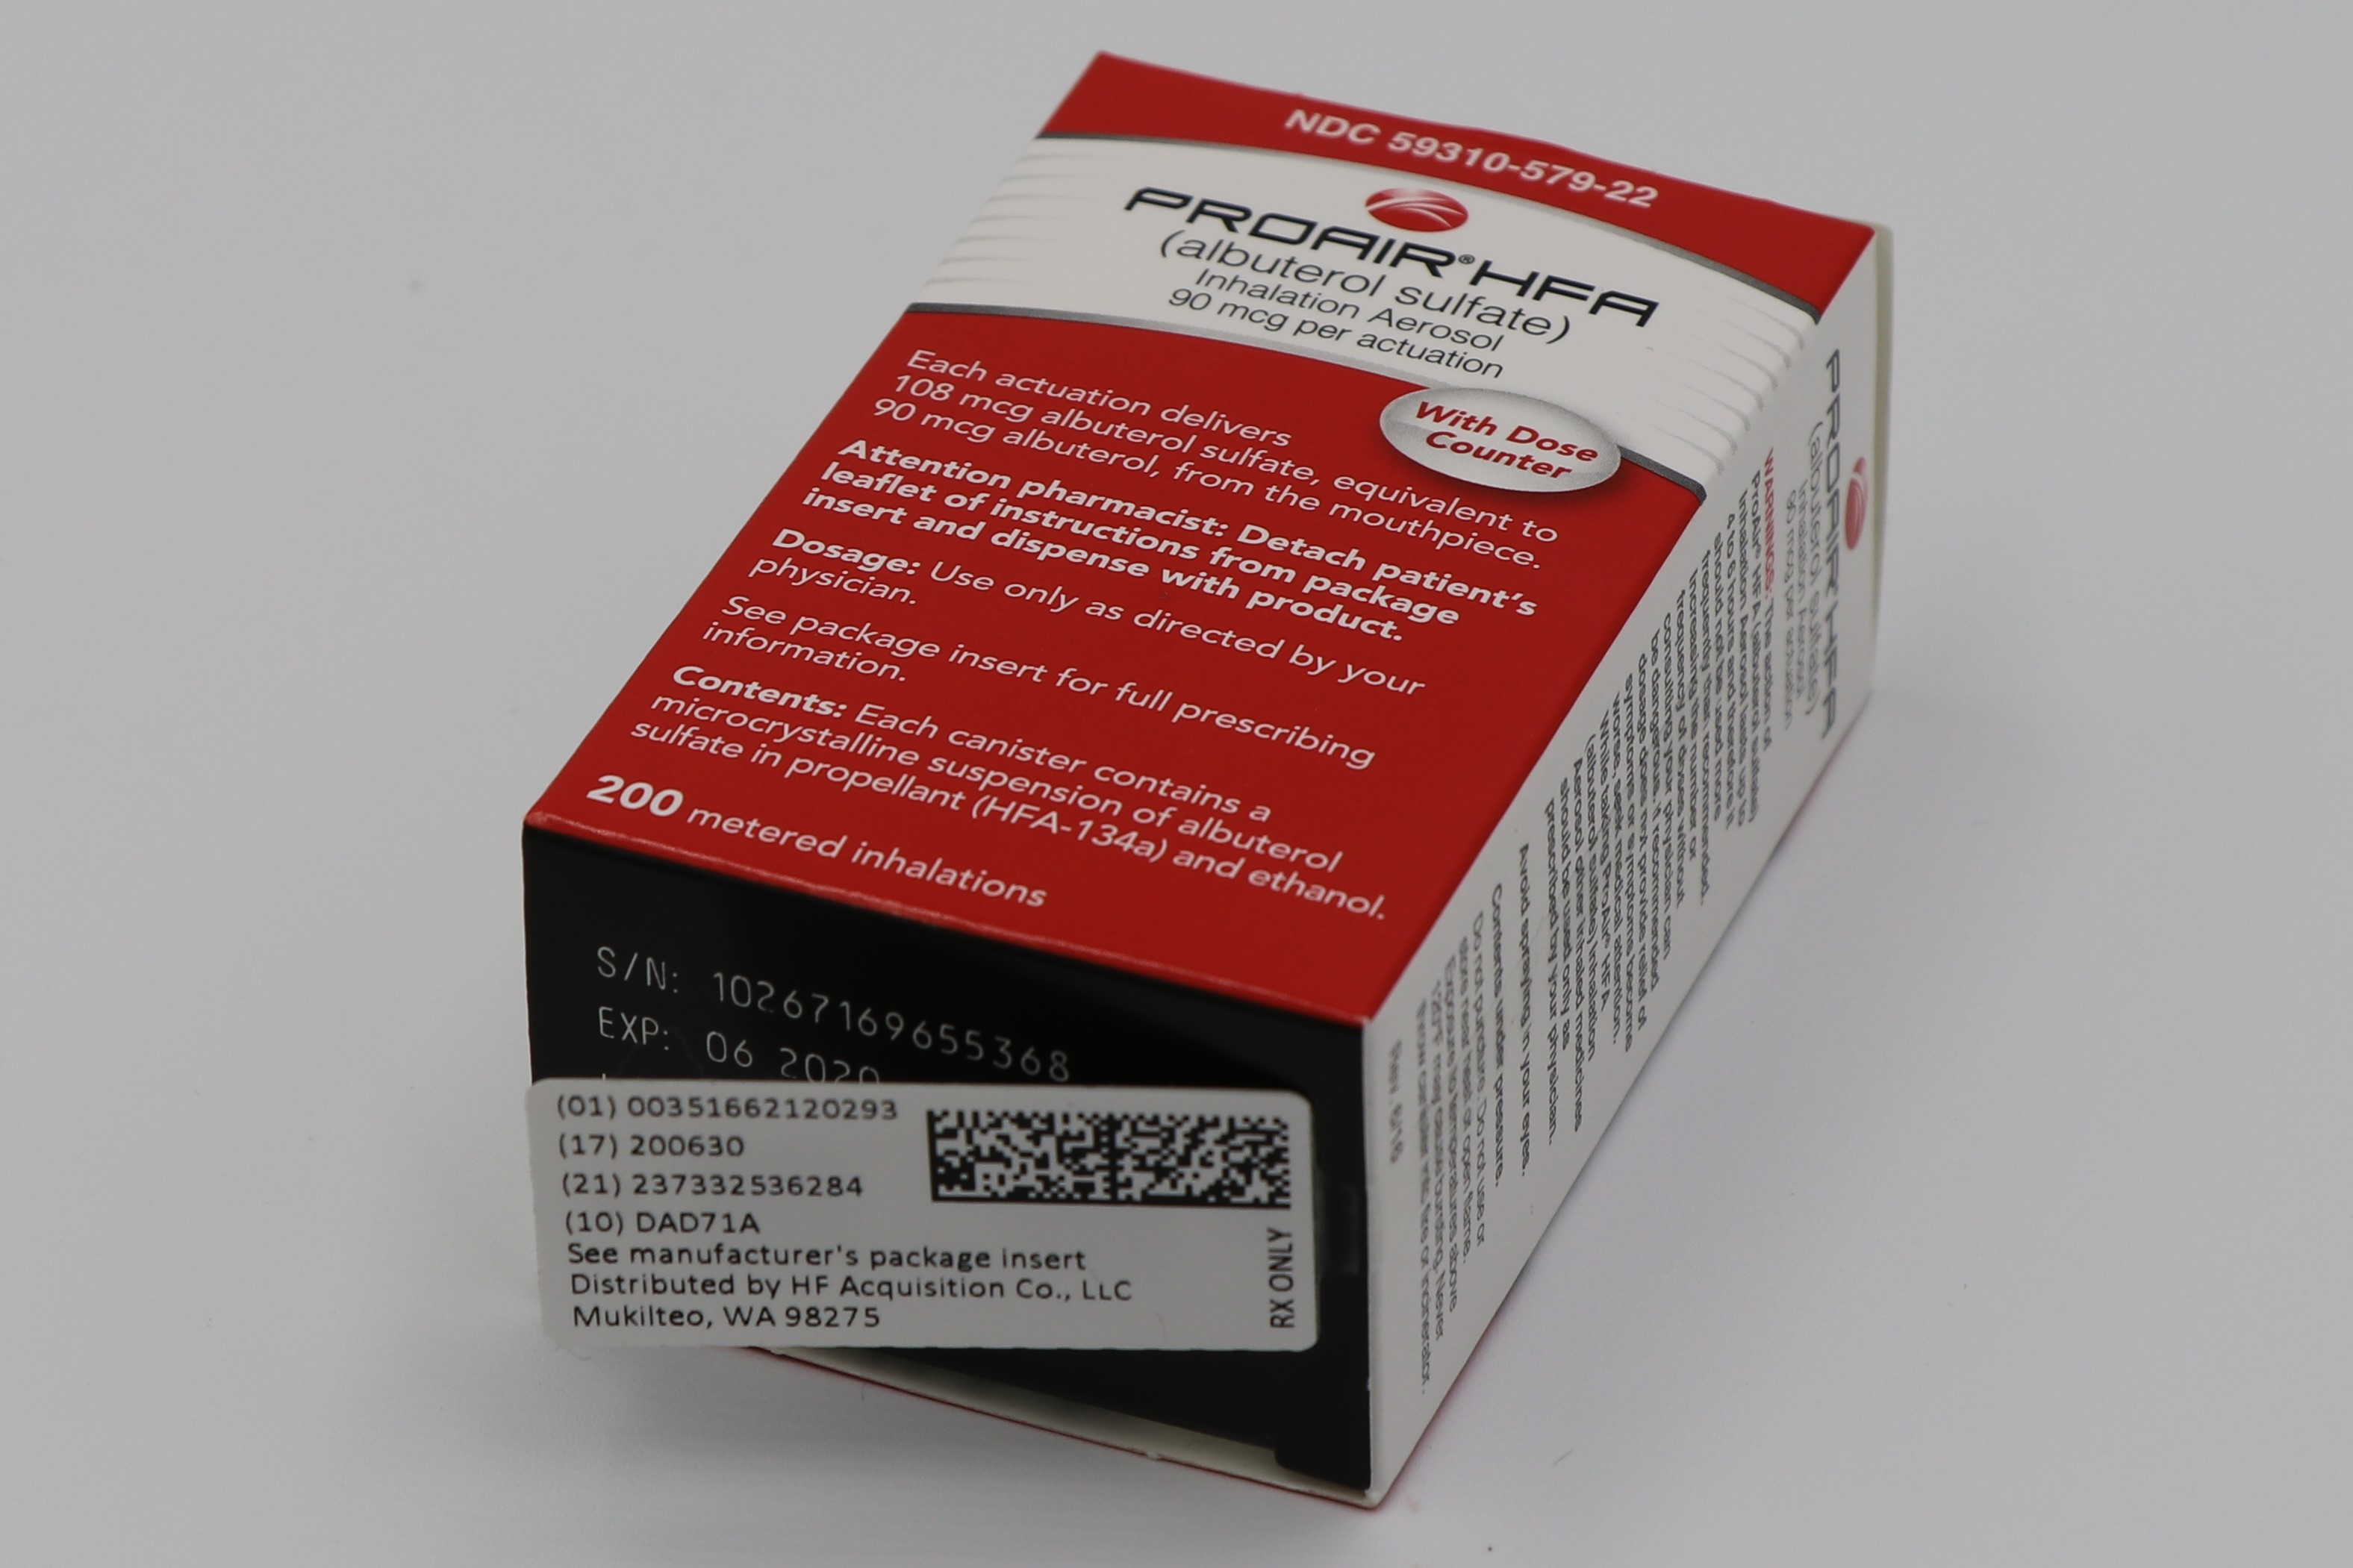 51662-1202-9 SERIALIZED LABELING